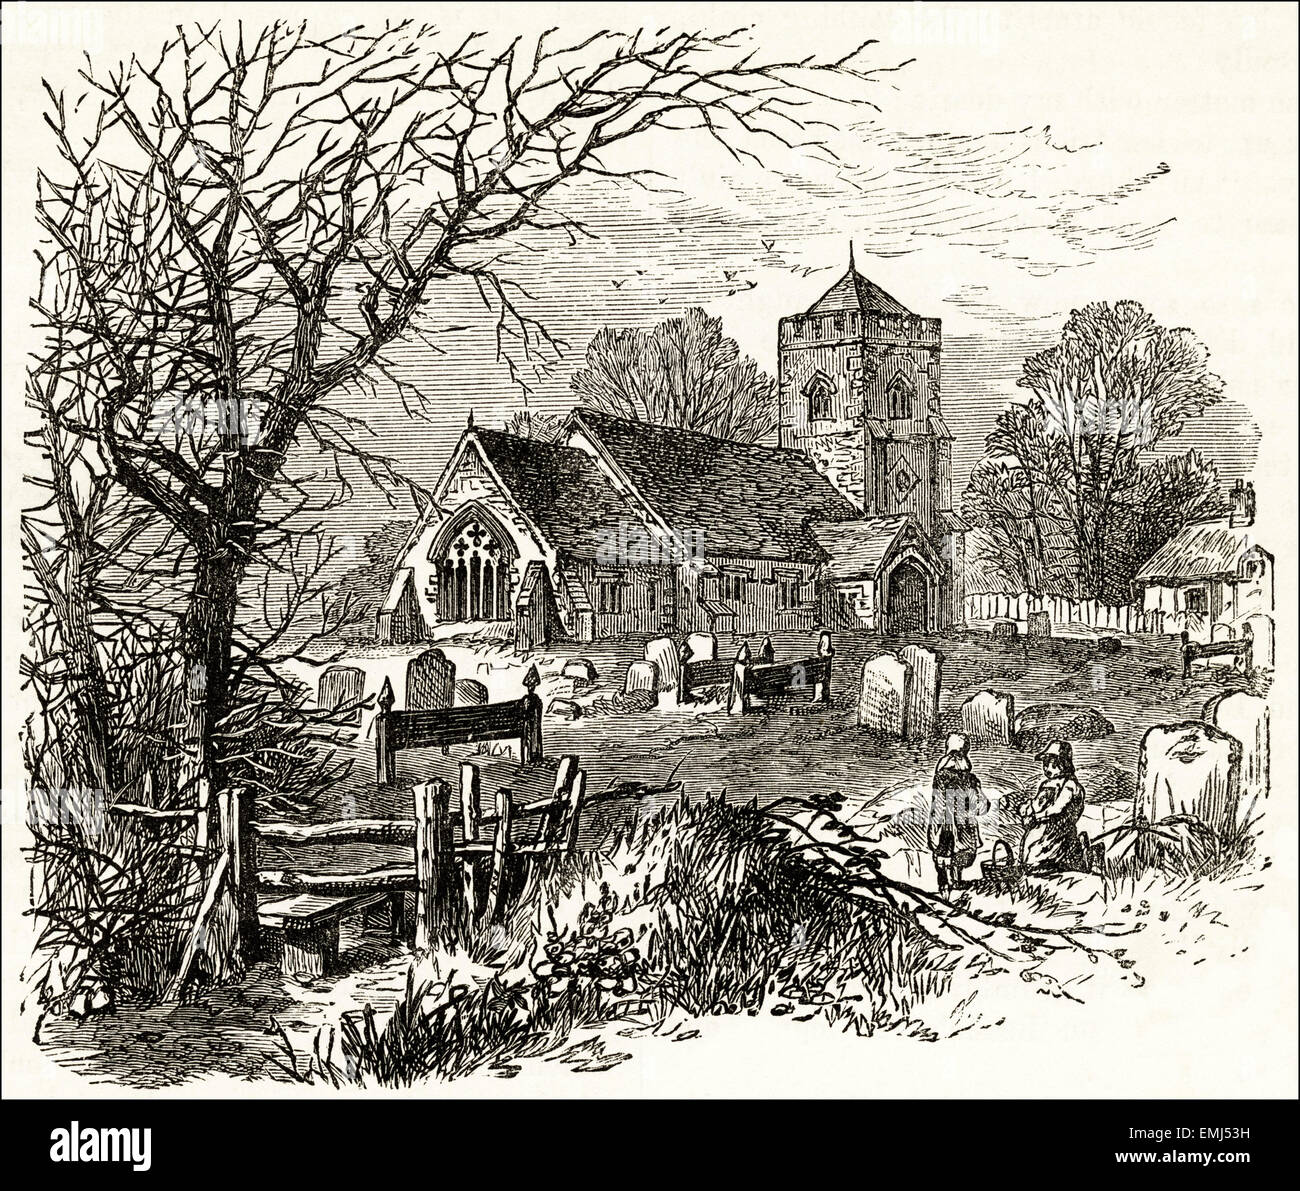 View of a church in the countryside. Victorian woodcut engraving dated 1890 - Stock Image